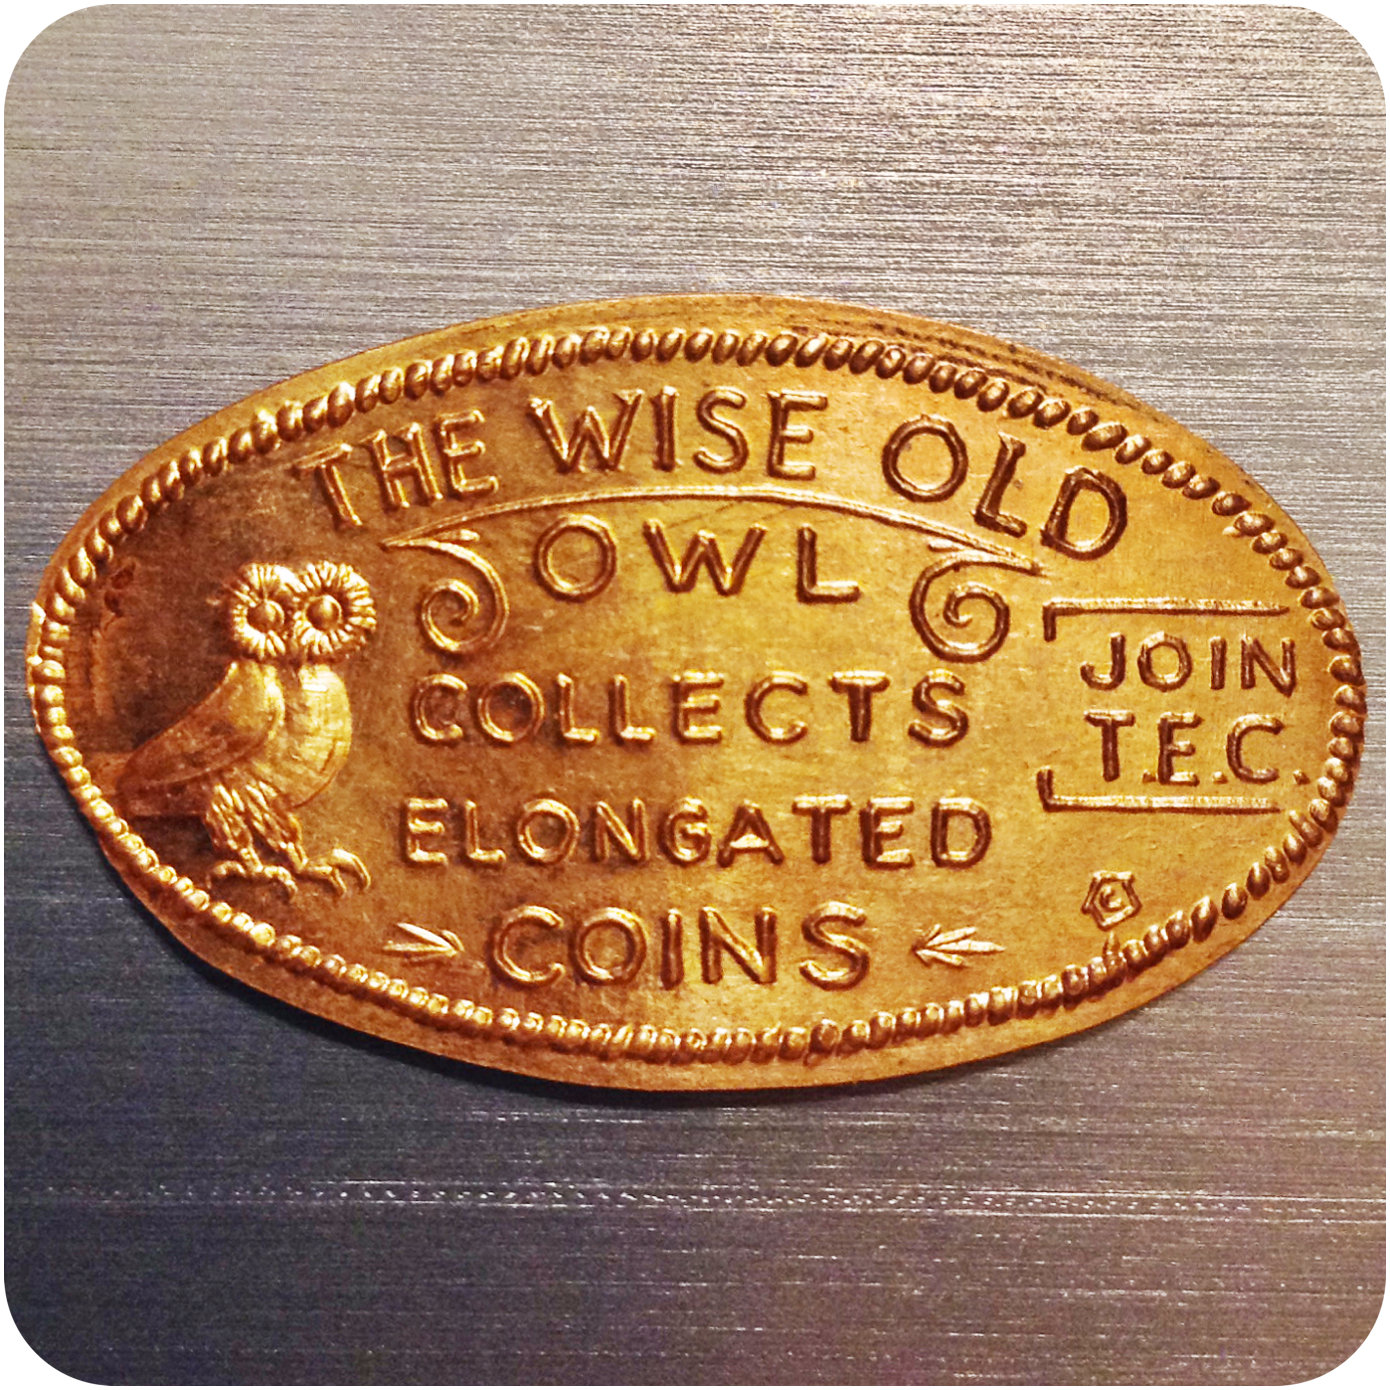 The Wise Old Owl Collects Elongated Coins - Join T.E.C.